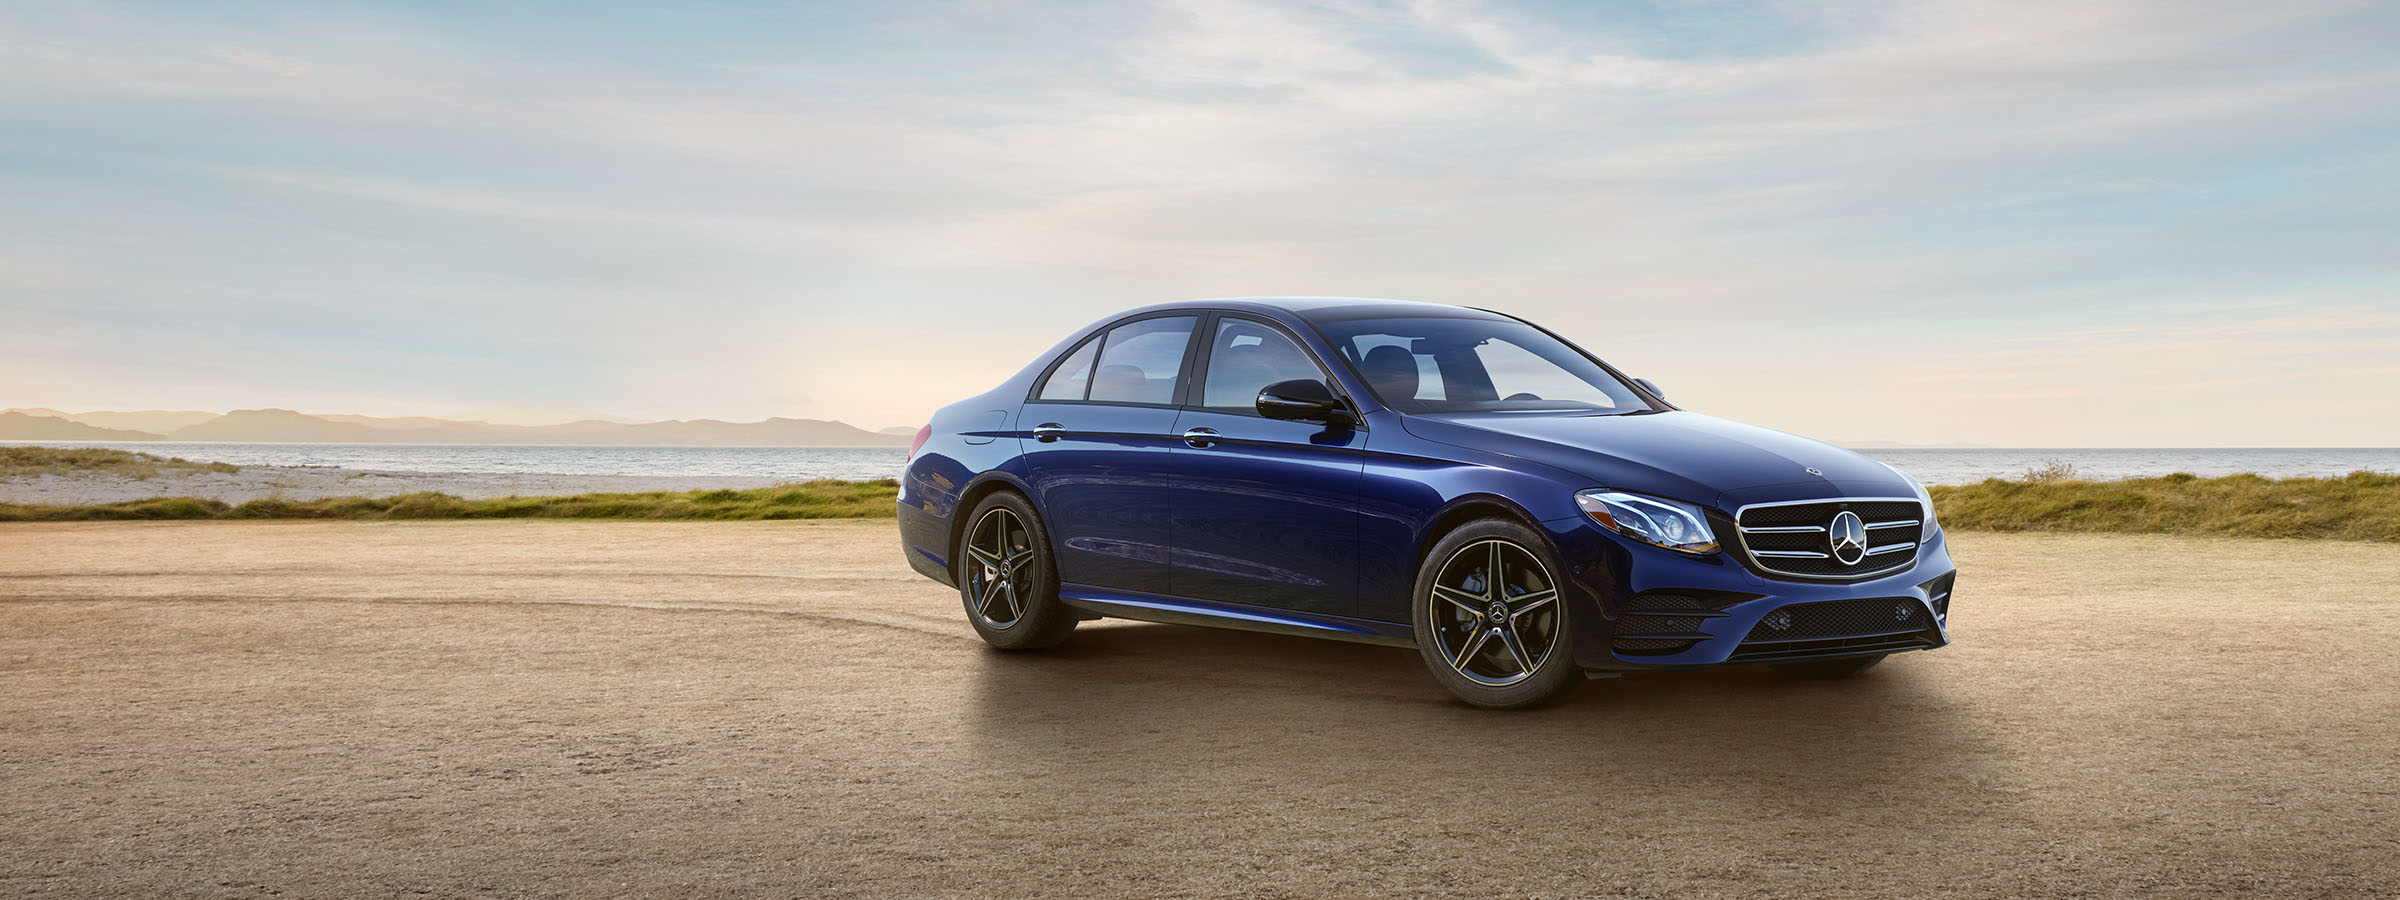 The 2019 E-Class Sedan in Lunar Blue with LED Lights and AMG Line Exterior with Night Package parked on a beach.